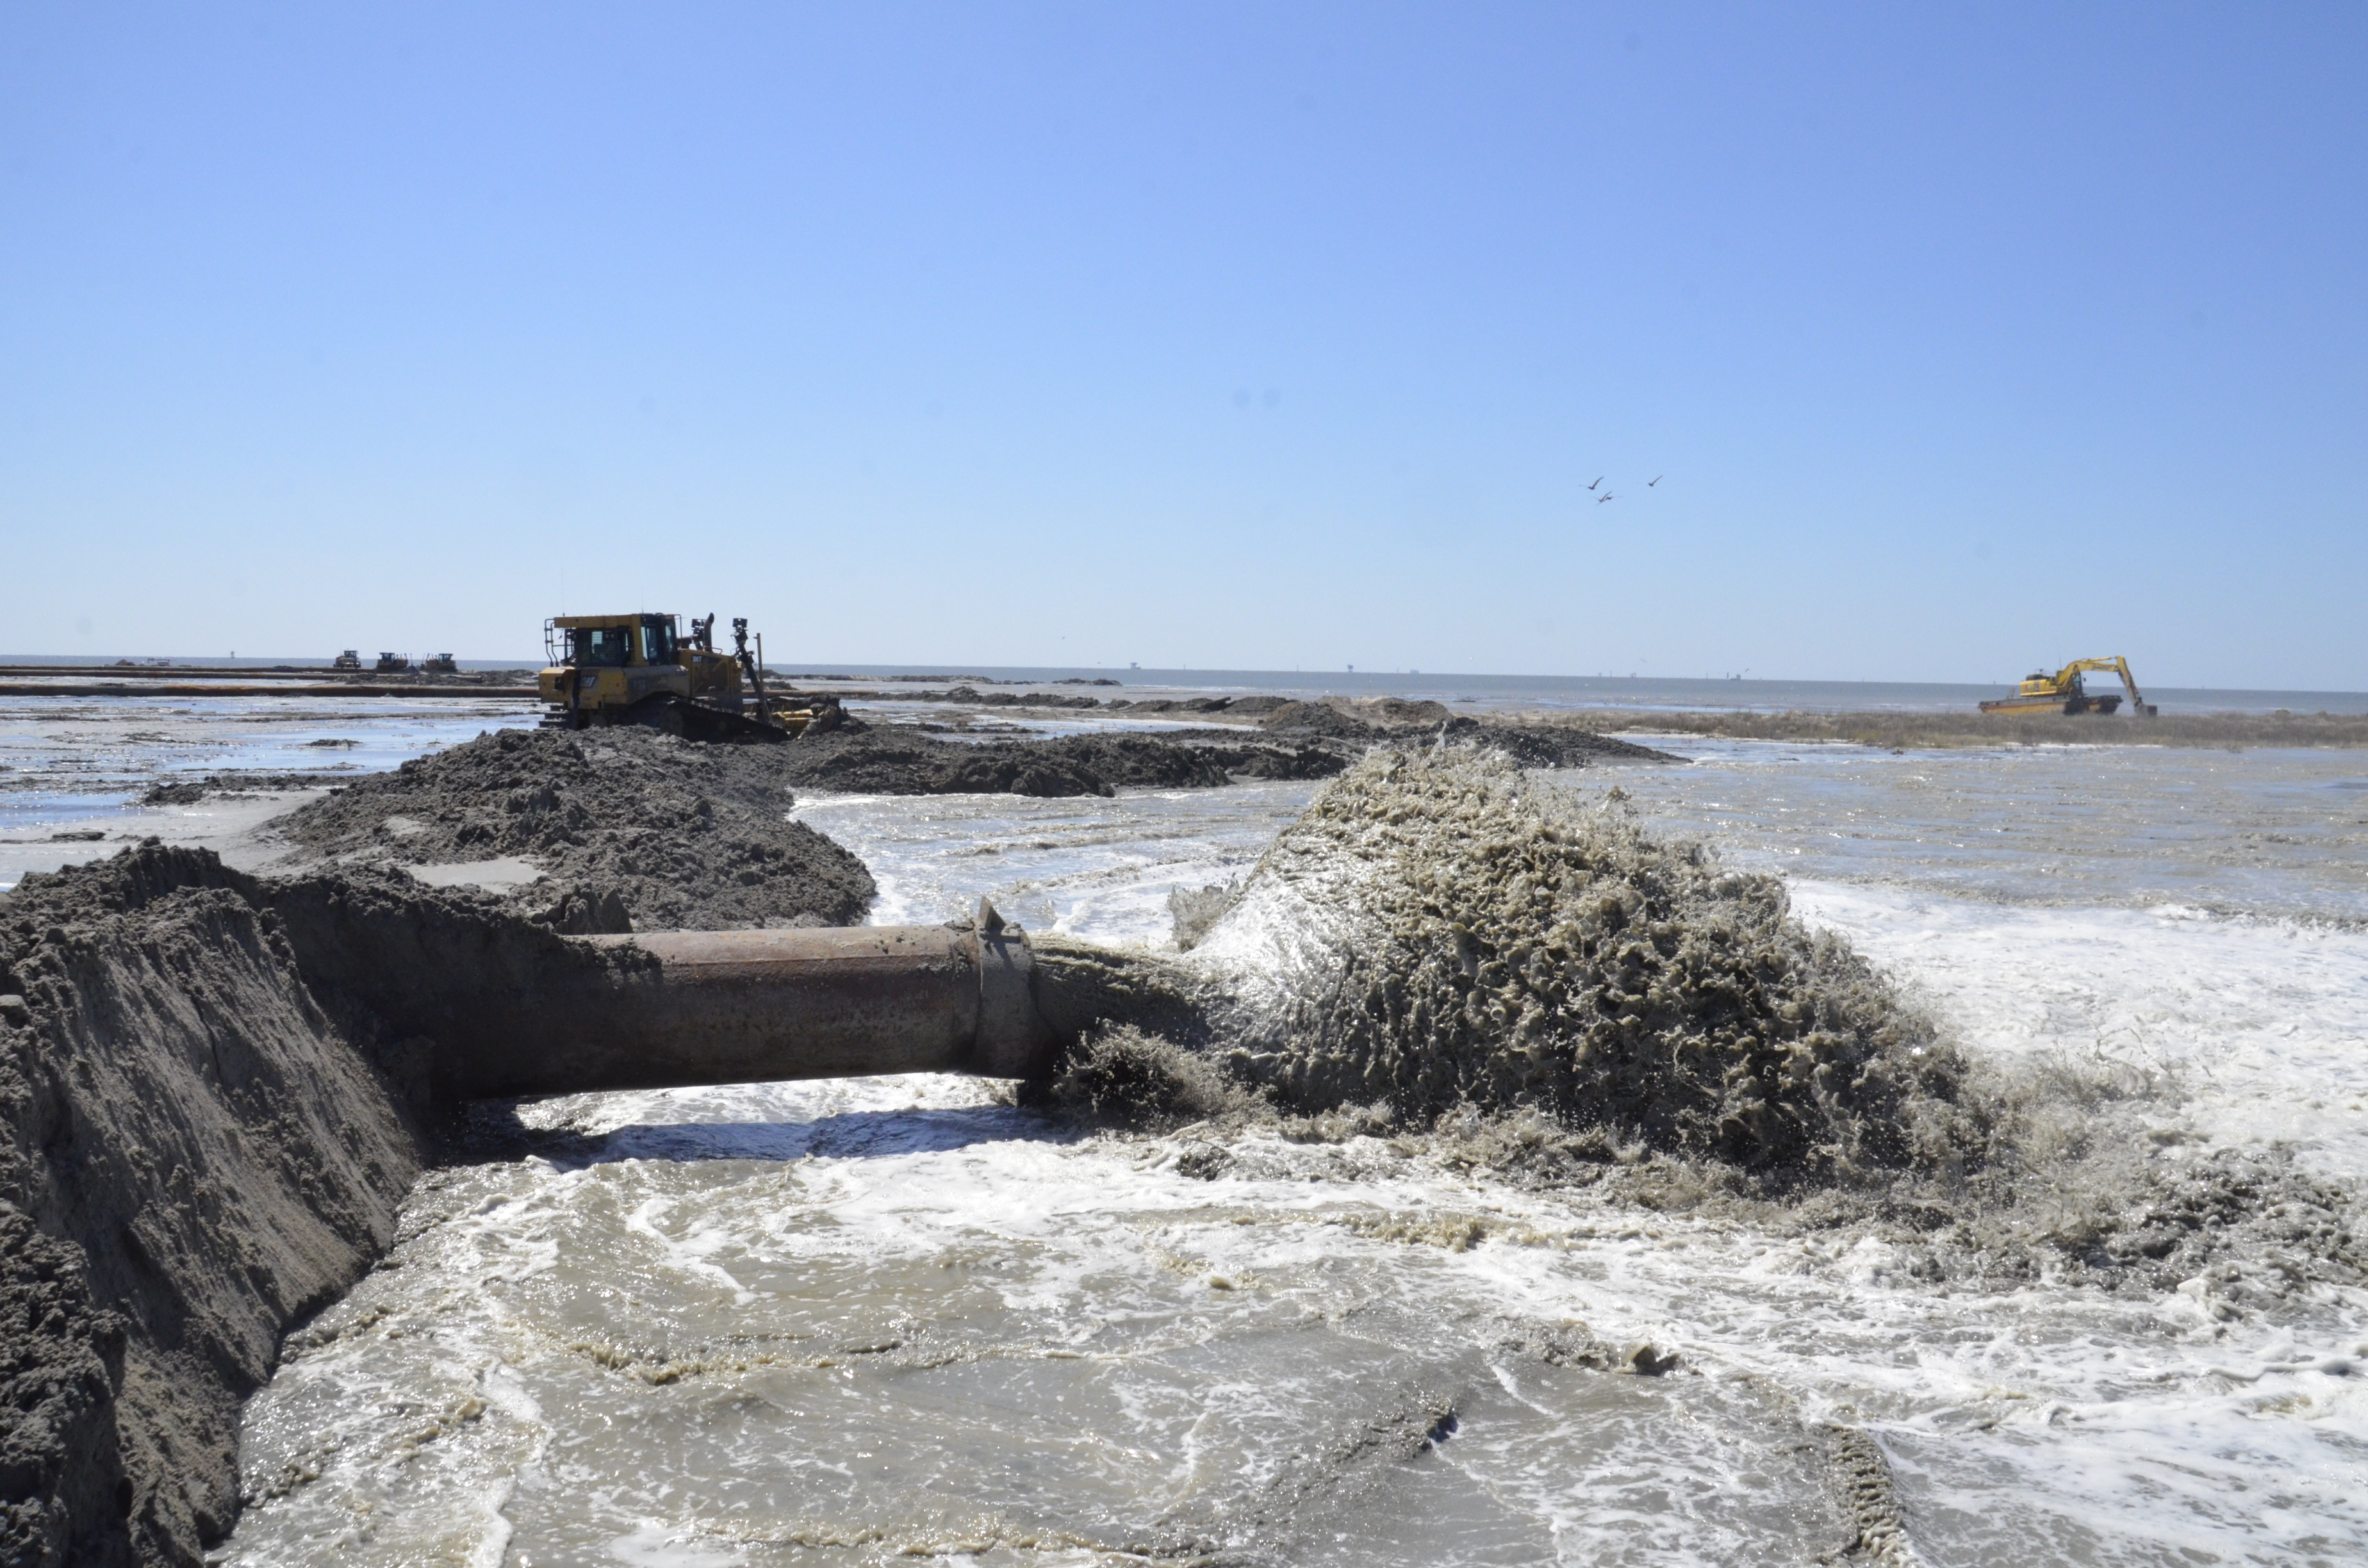 Dredged sediment pumping out of a pipe to help build coastal ecosystems.